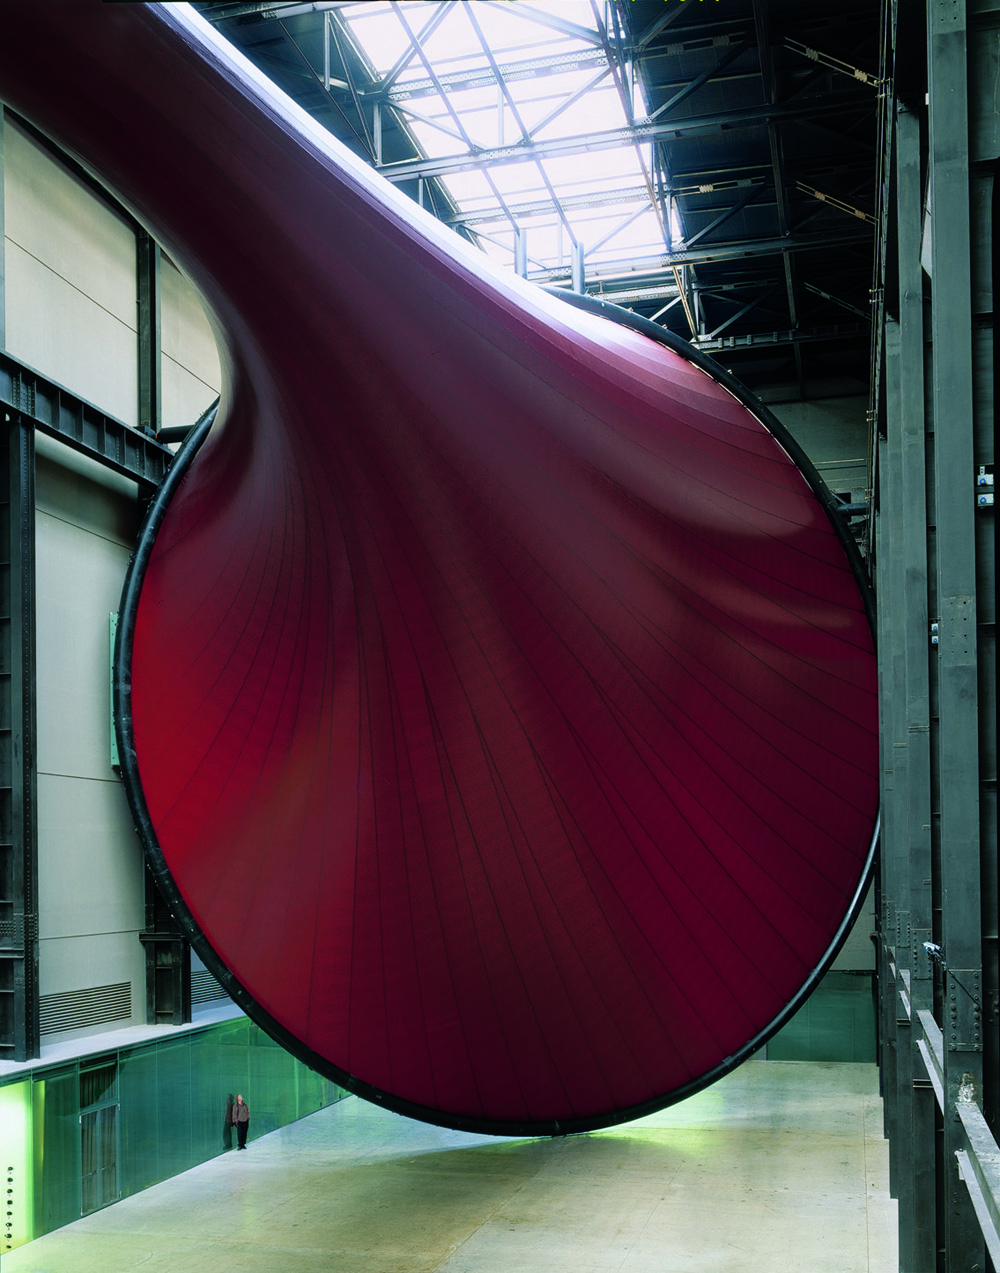 Figure 99: Anish Kapoor, Marsyas (2002, PVC and steel installation.) Installation view: Tate, London, 2002-2003. Photo: John Riddy. Courtesy: Tate. Image supplied by Anish Kapoor Studio. Permission to use image obtained from Anish Kapoor Studio via Lisson Gallery.